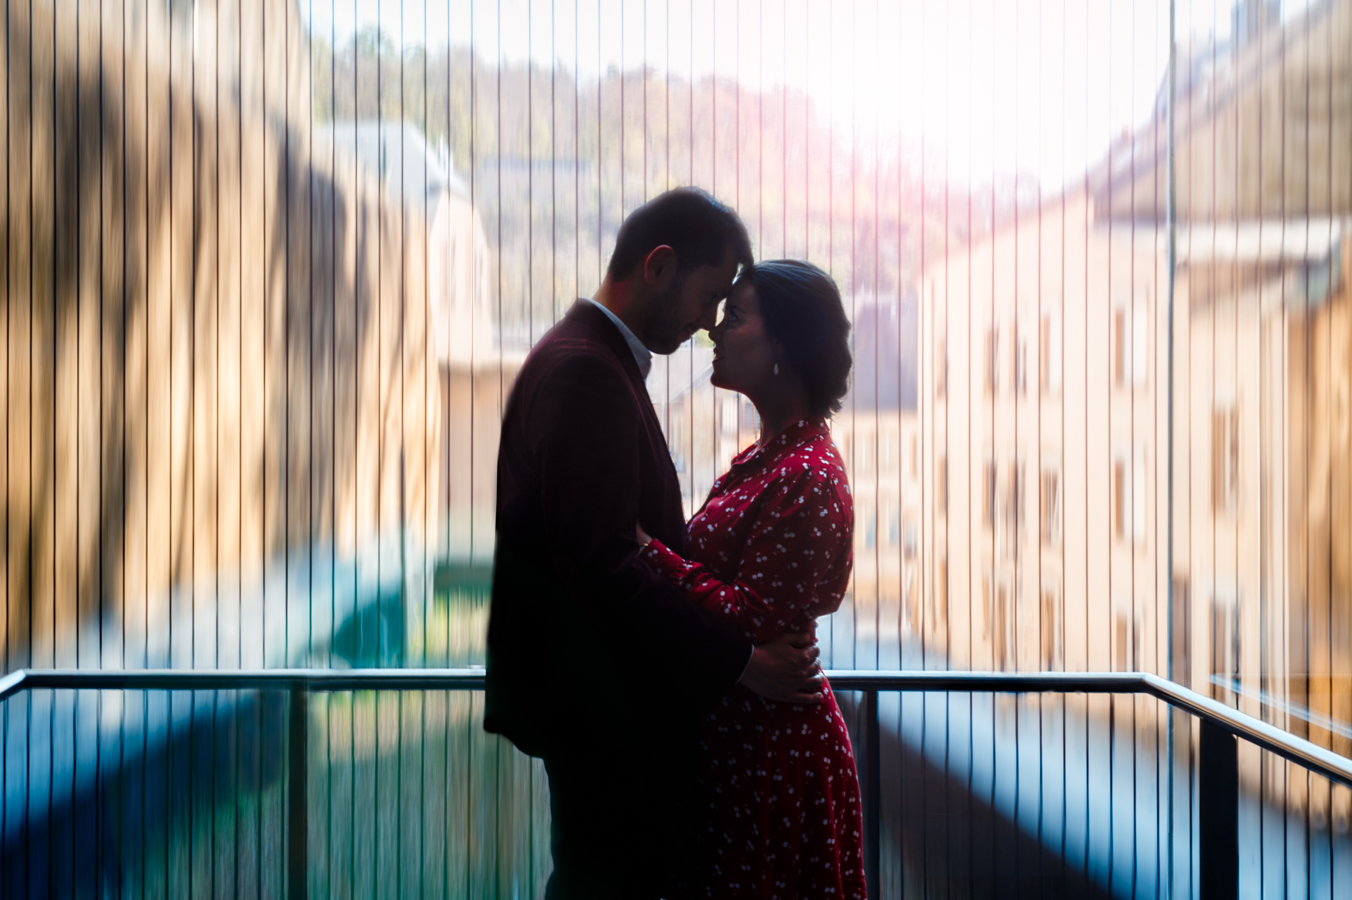 Engagement Photoshoot in Luxembourg at the Pfaffenthal elevator - L'Œil Derrière le Miroir Photographie